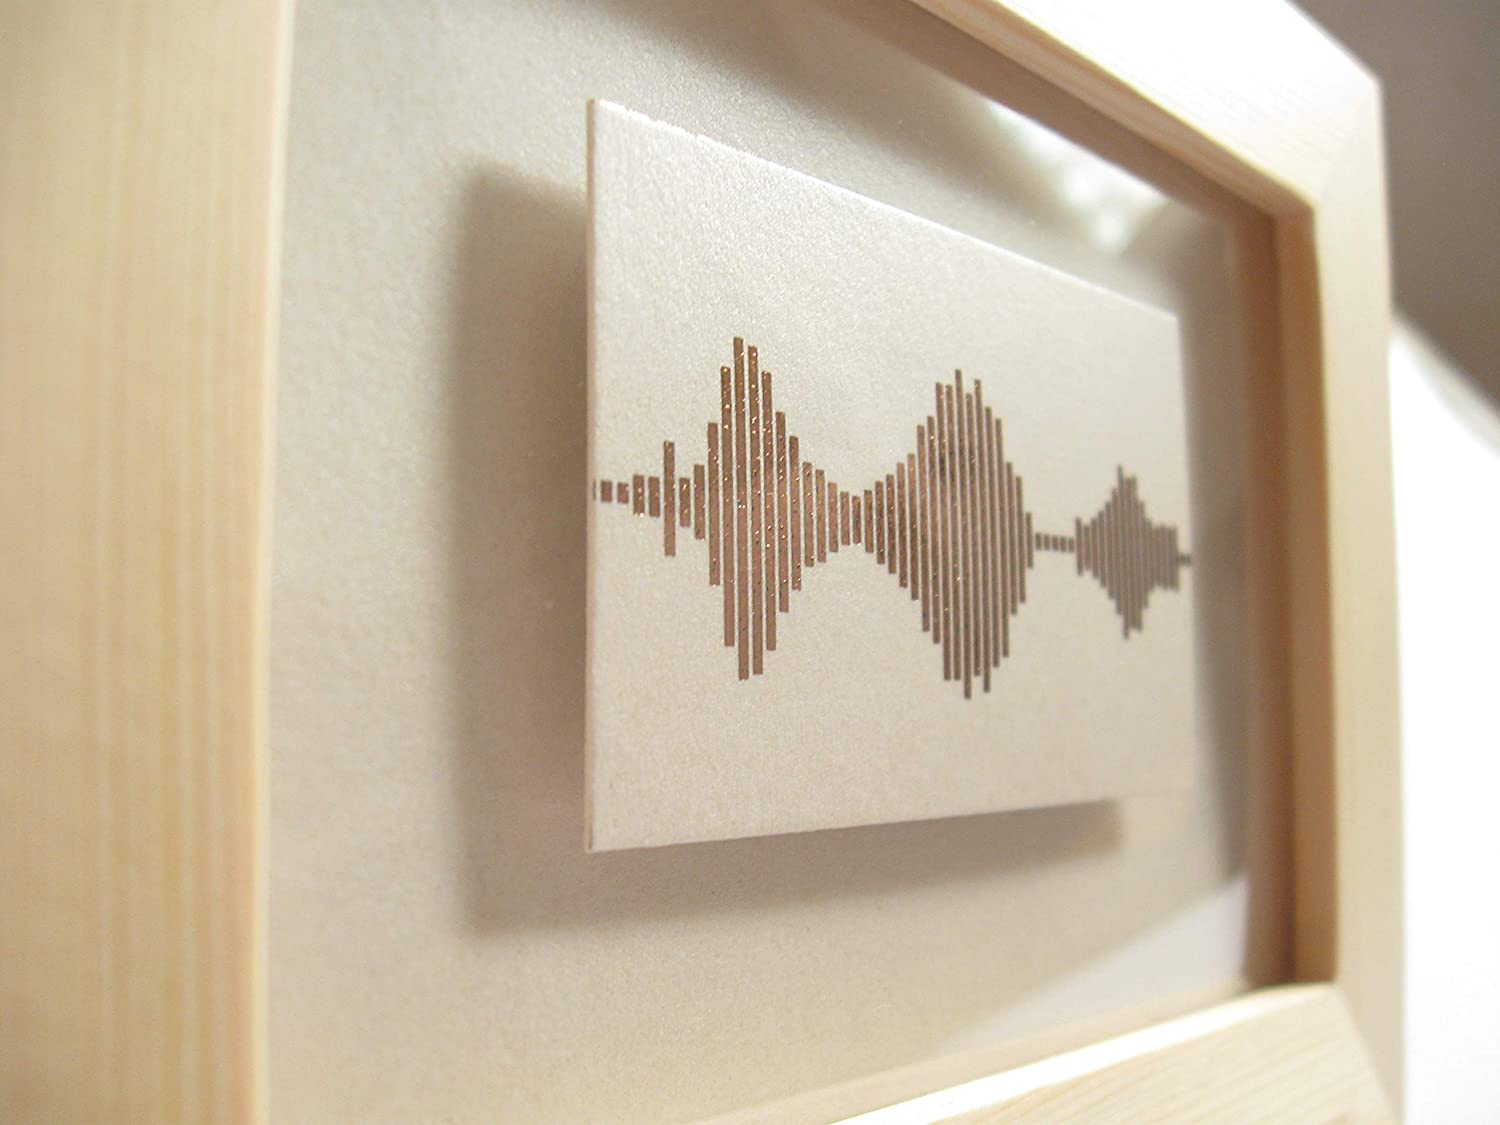 """3.5 x 5 inch Valentine Gifts for Mother /""""I Love You/"""" Rose Gold Foil Print Visible Voice Soundwave Art with Wood Frame"""